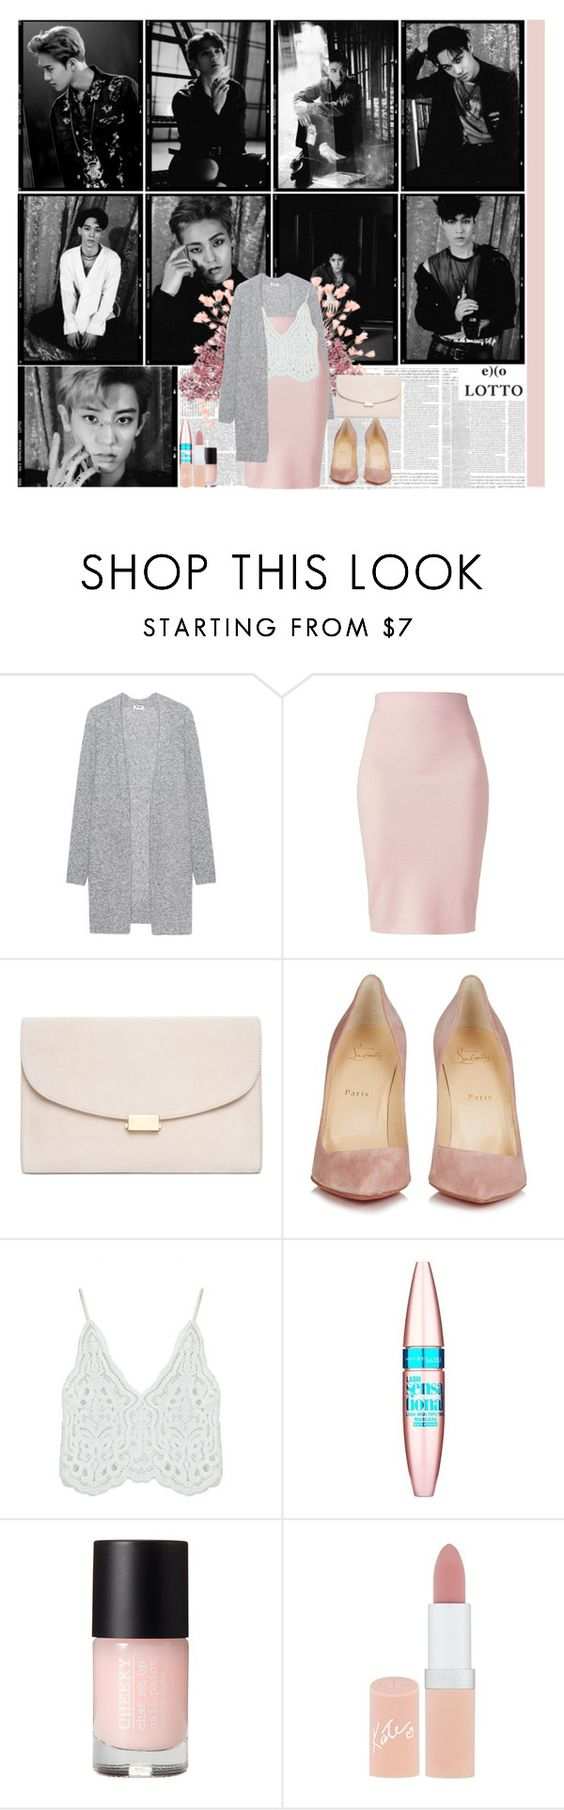 """""""~ lipstick, chateau, wine color ~"""" by small-lullabies ❤ liked on Polyvore featuring Acne Studios, Winser London, Mansur Gavriel, Christian Louboutin, Chicnova Fashion, Maybelline and Rimmel"""